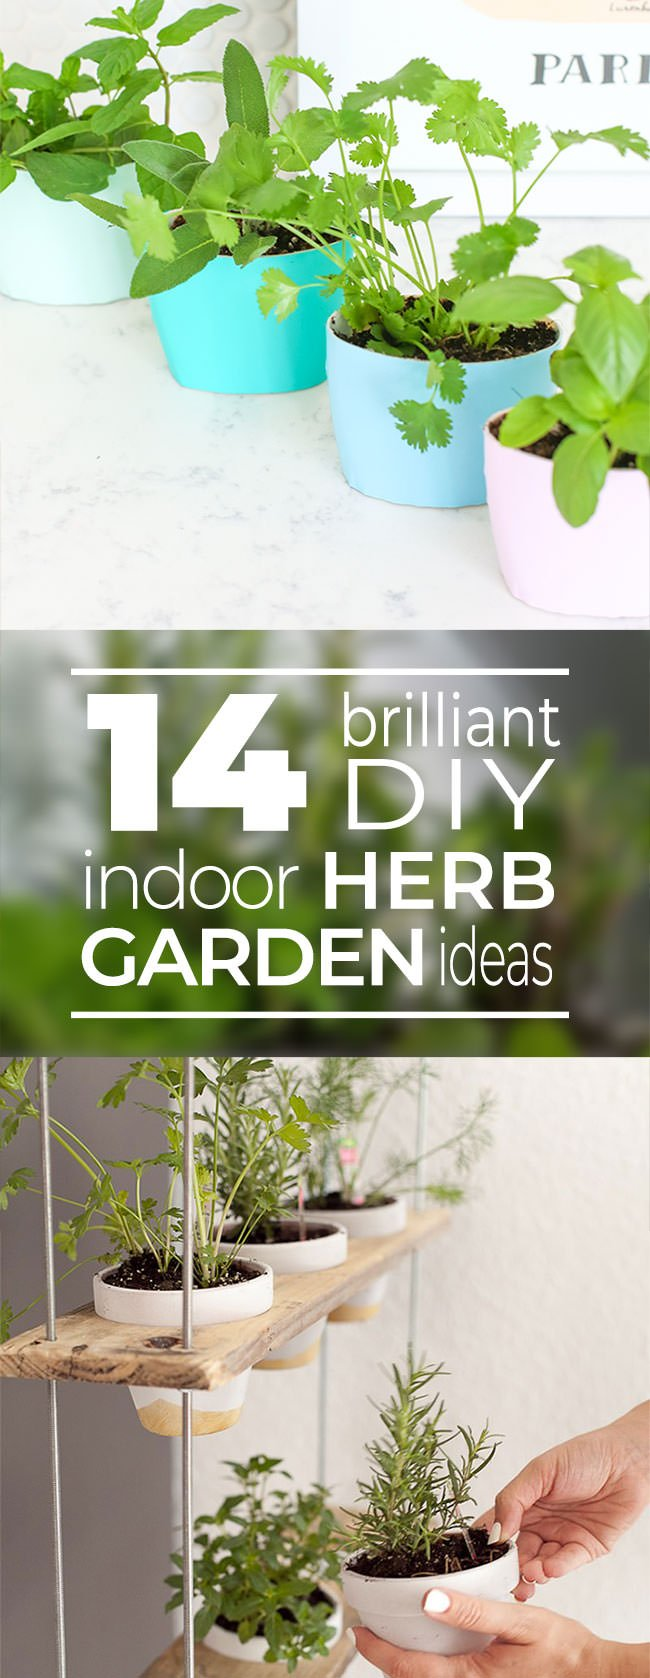 Indoor Herb Garden Ideas. 14 Brilliant Diy Indoor Herb Garden Ideas